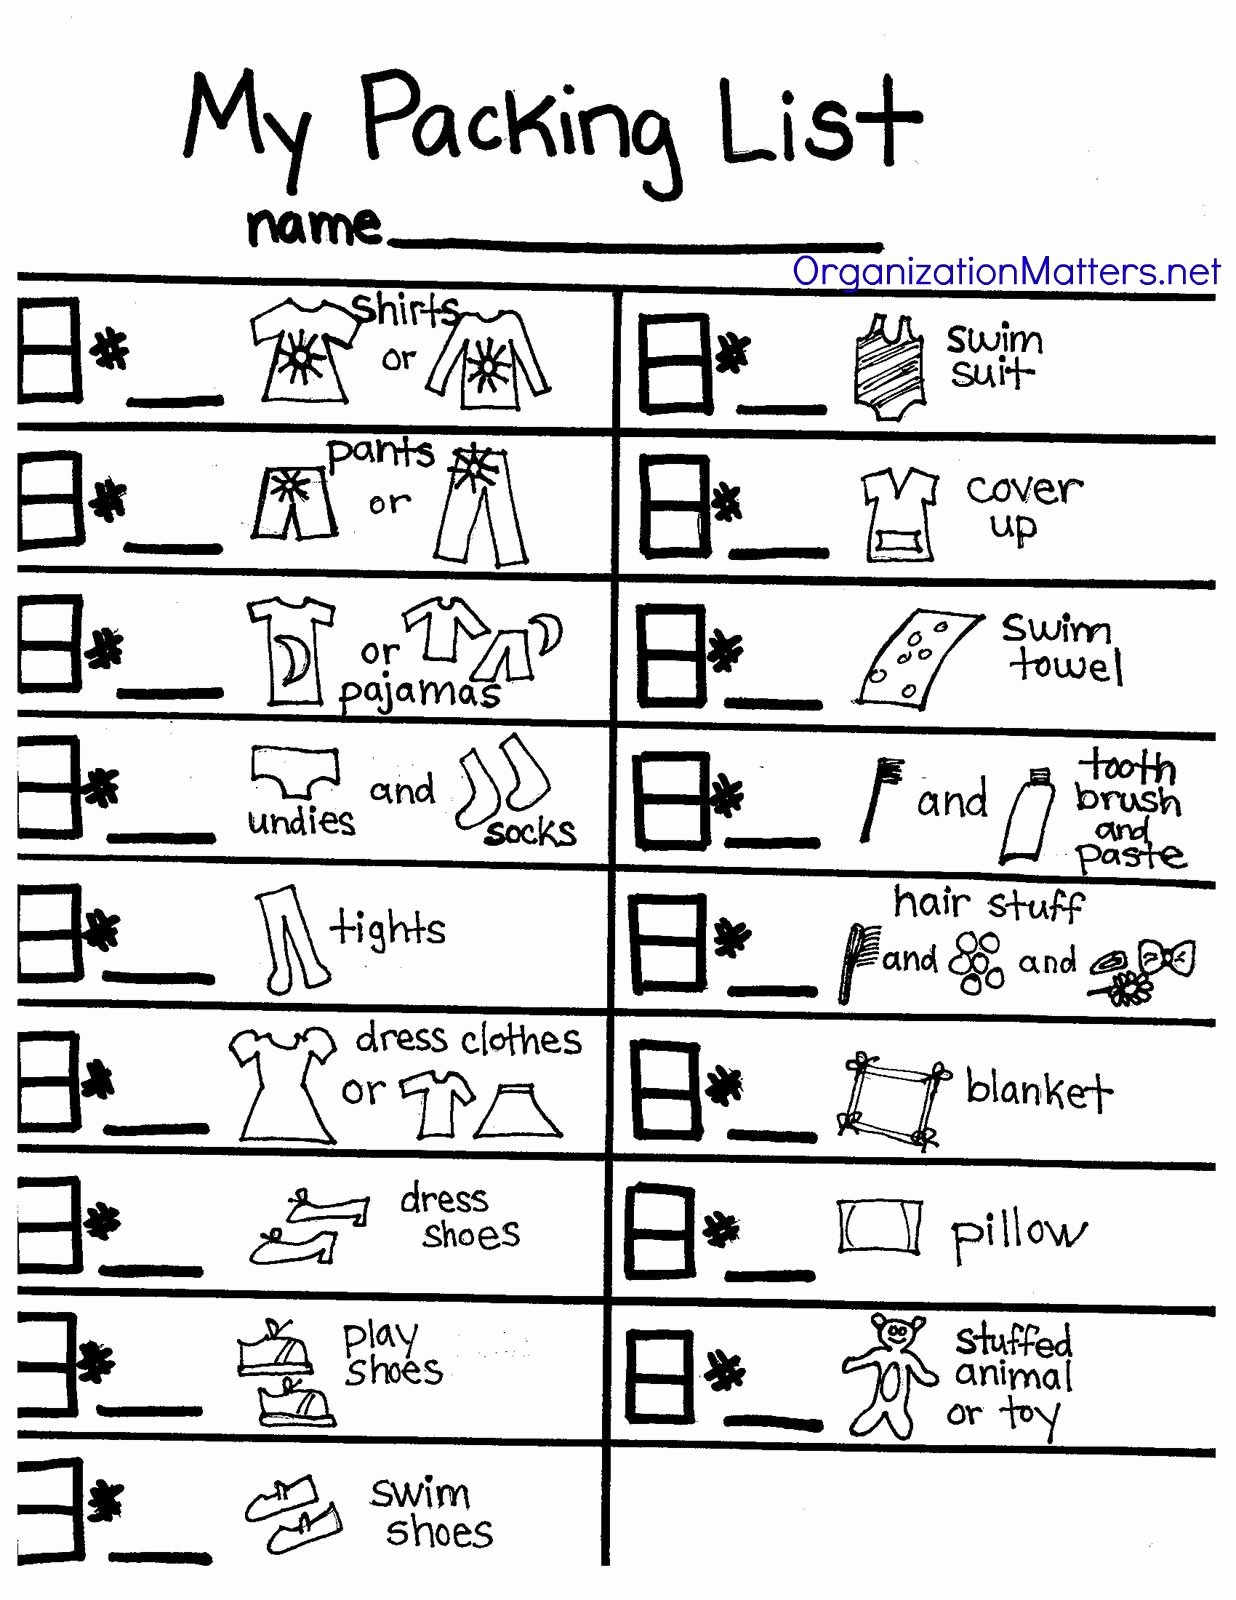 Blank Packing List Best Of A Packing List Just for Kids